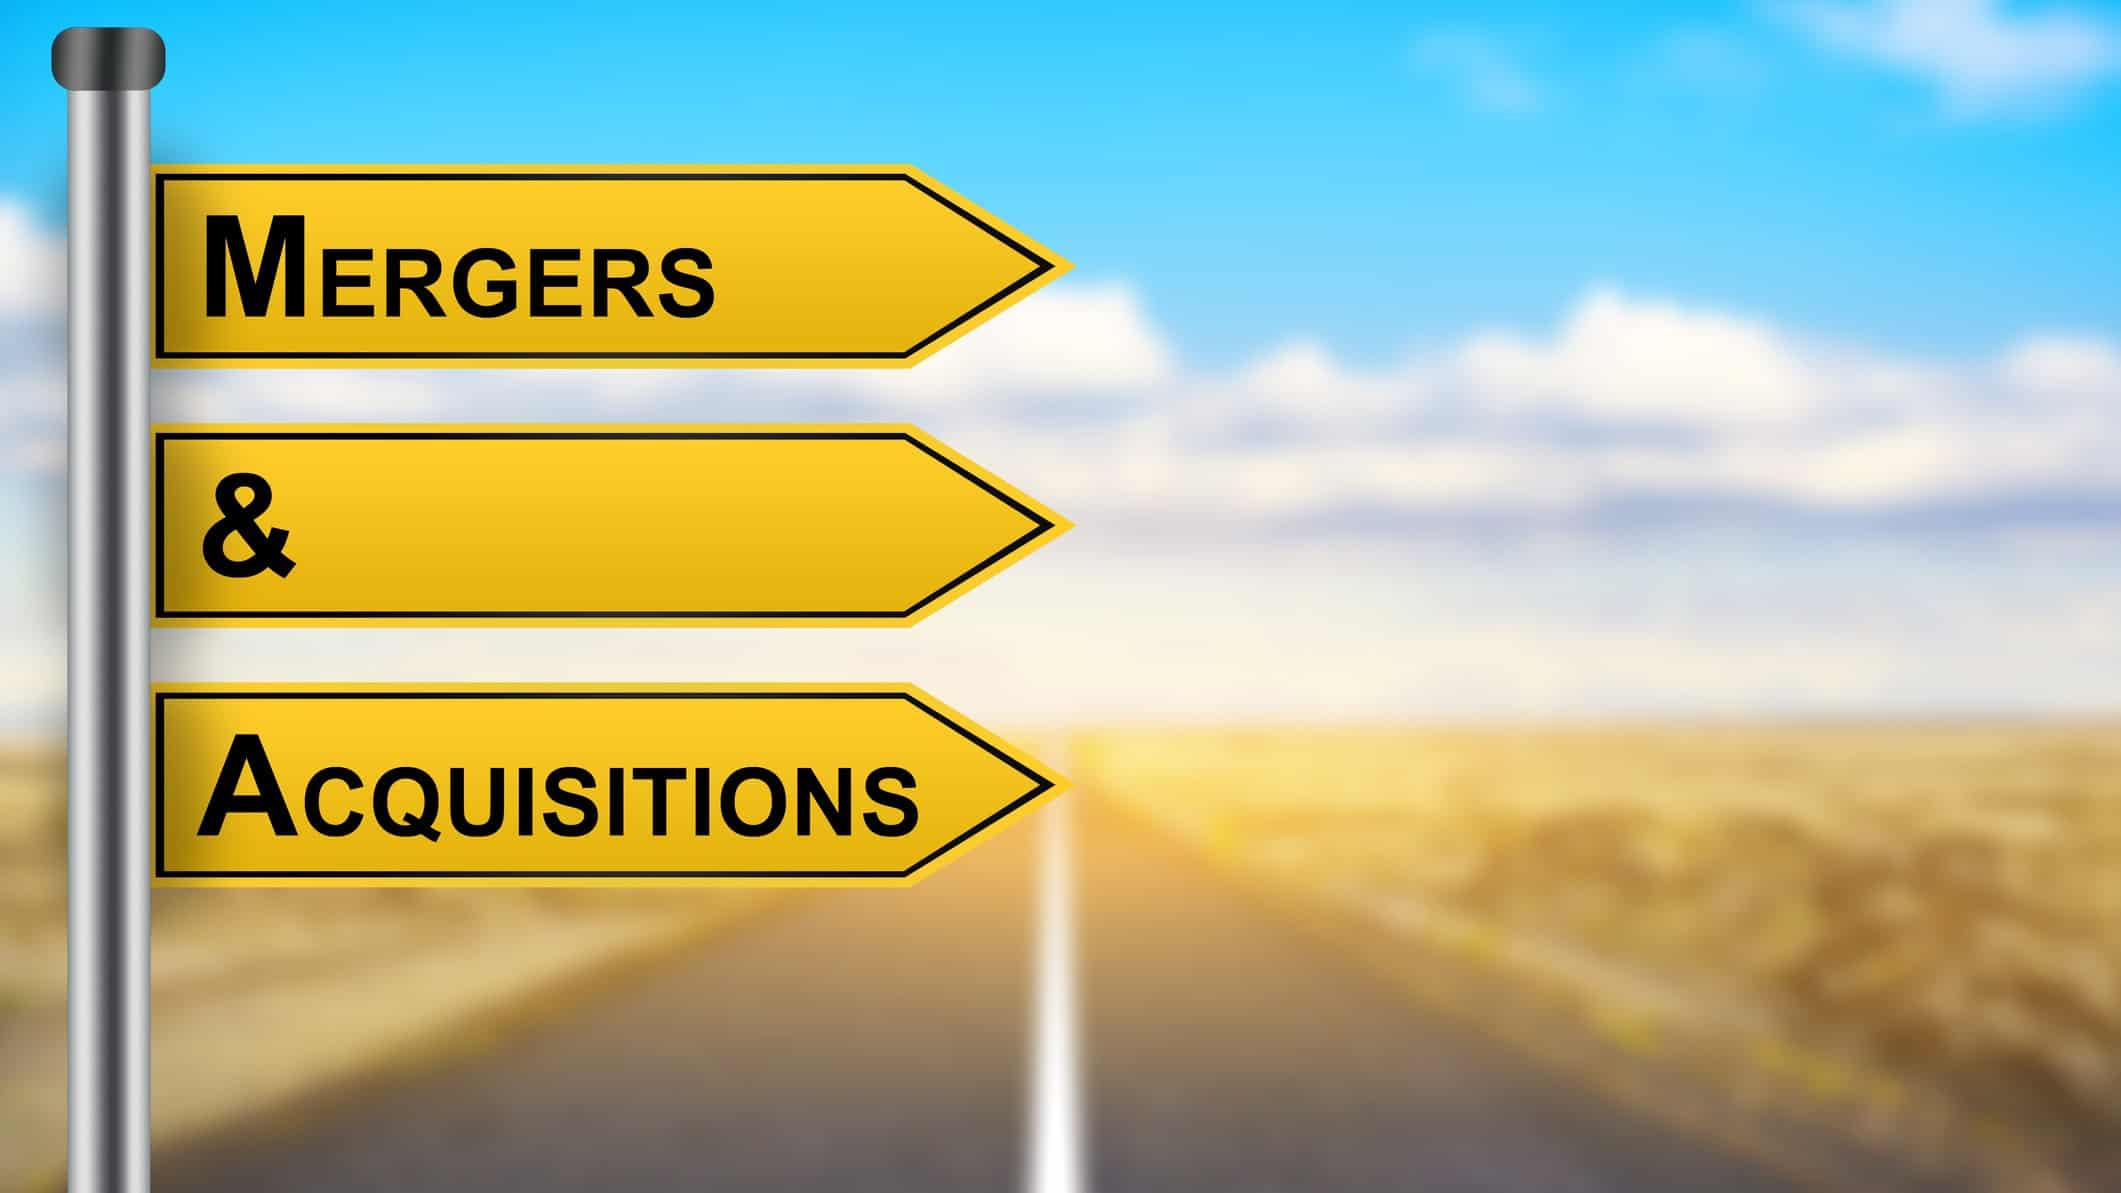 asx share price movements represented by street signs stating mergers and acquisitions